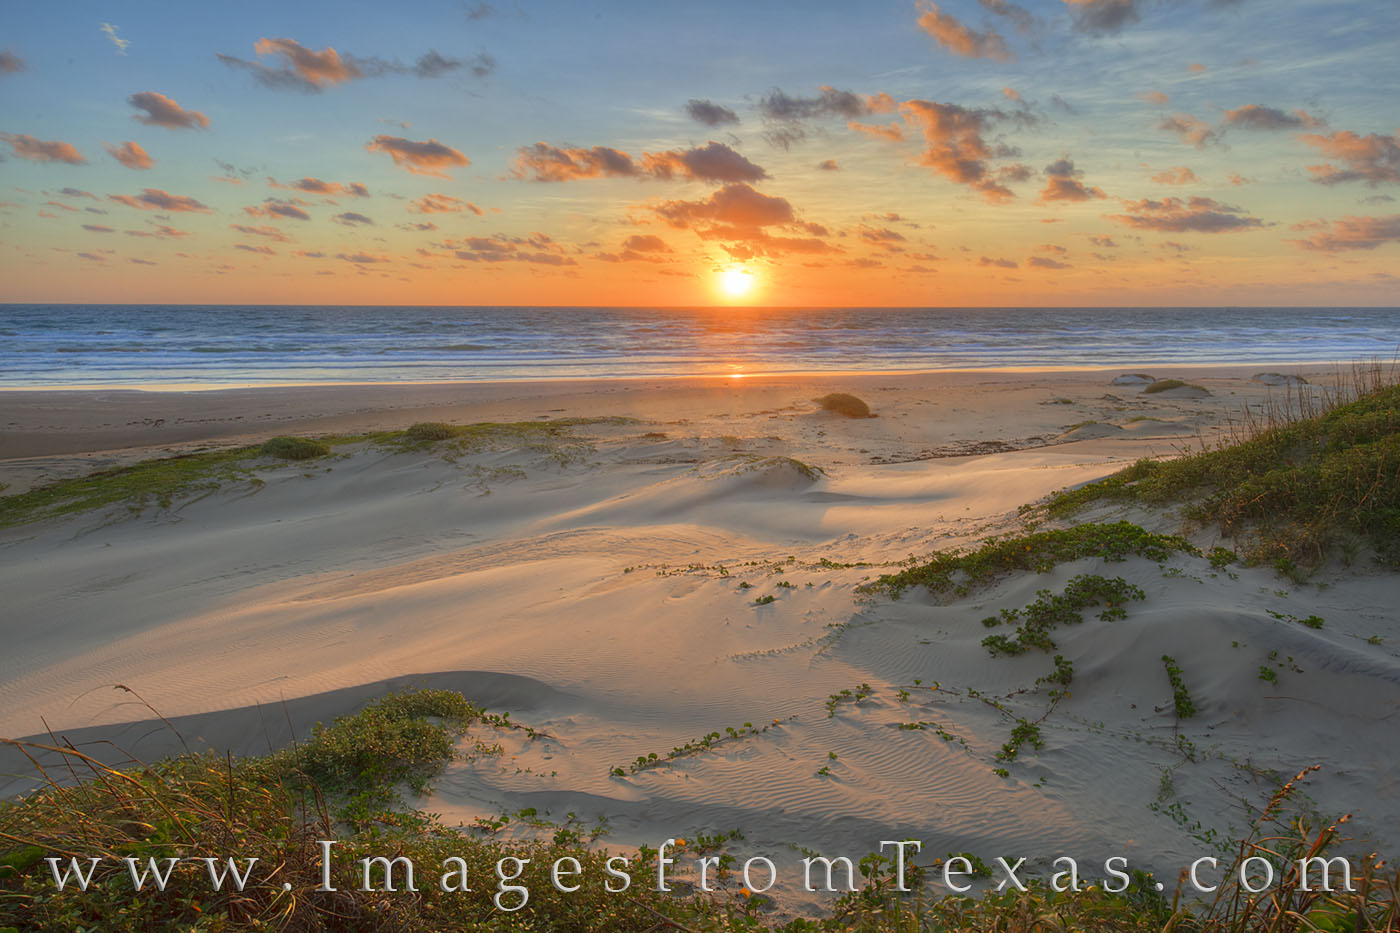 south padre island, port isabel, beach, sand, dunes, sunrise, brownsville, morning, sun, orange, blue, texas coast, coast, gulf of mexico, photo